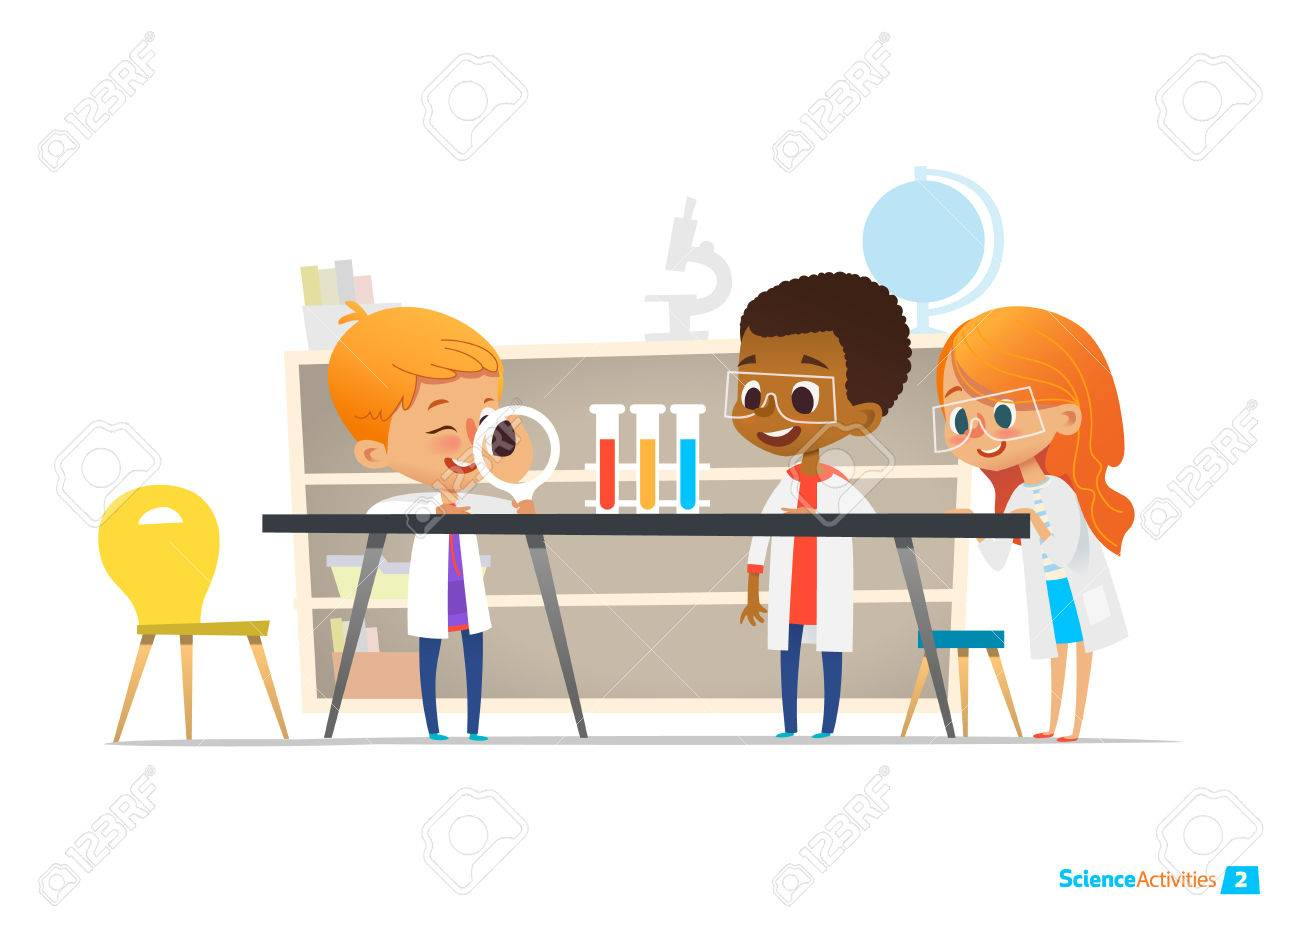 School children in lab clothing and safety glasses conduct scientific experiment with chemicals in chemistry laboratory. Educational science activities for kids. Vector illustration for website, ad. - 69810463